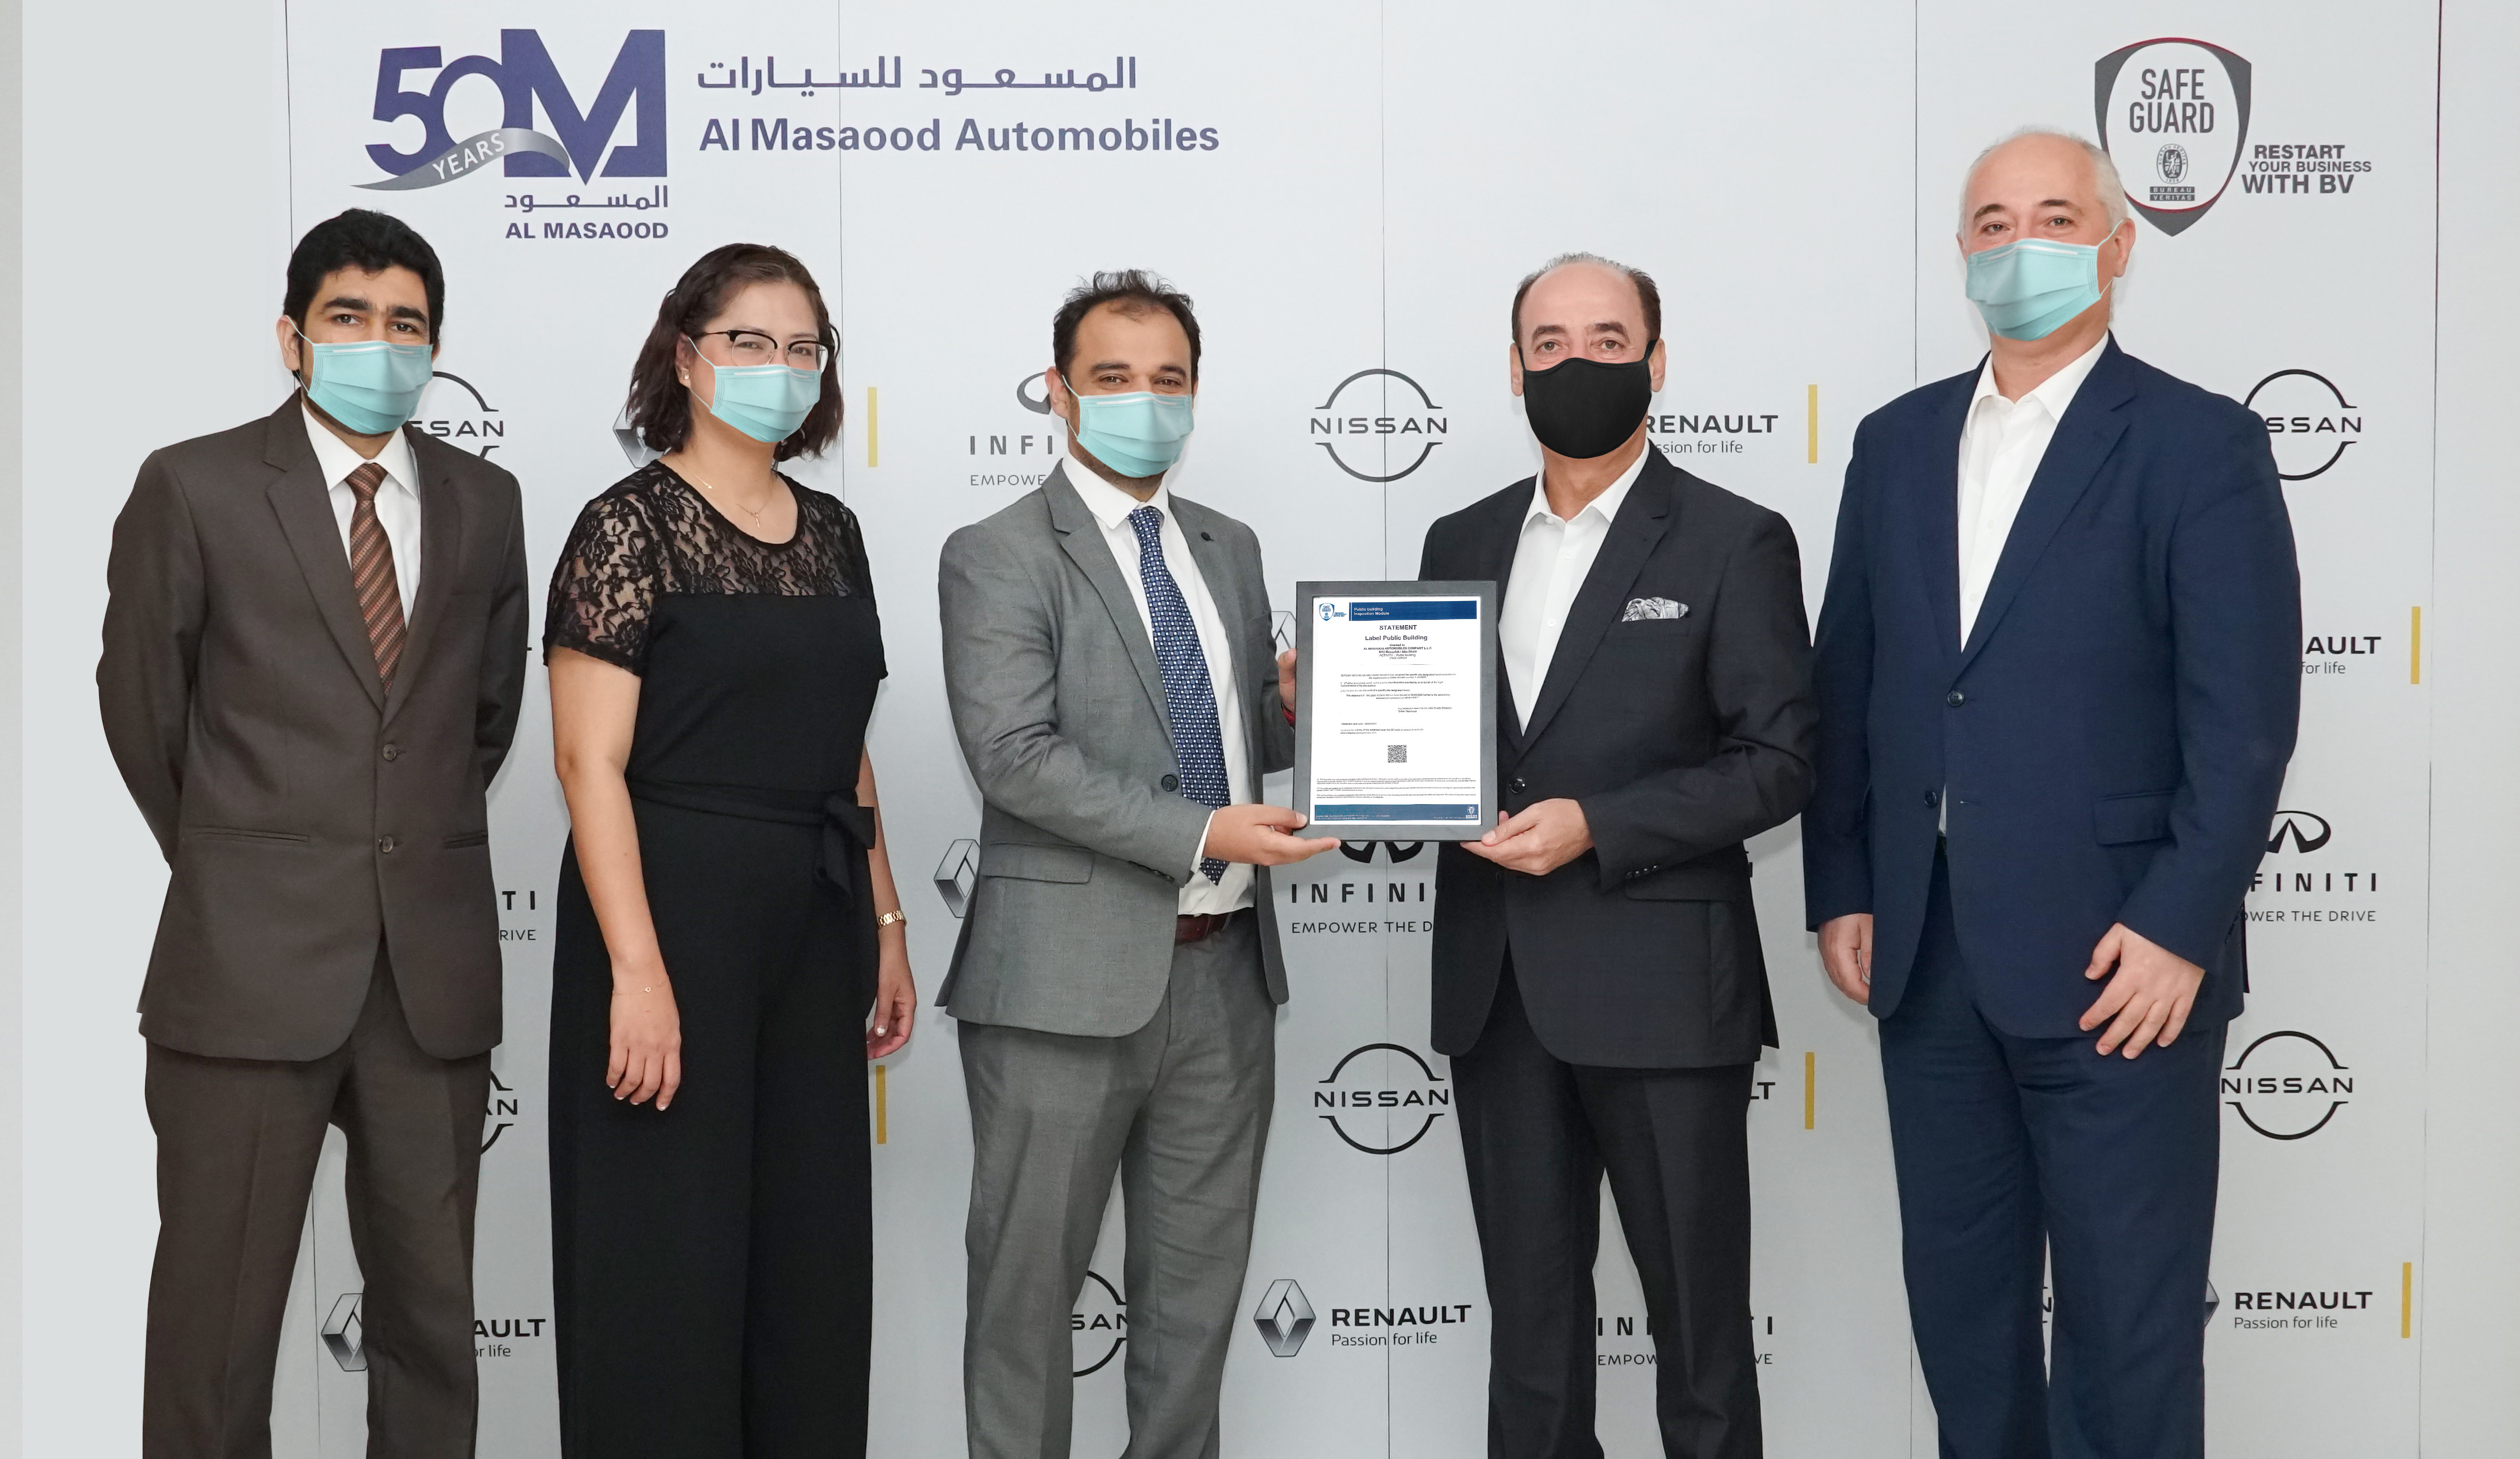 Al Masaood Automobiles Becomes First Automotive Company to Receive Bureau Veritas' 'Safeguard' Label in GCC